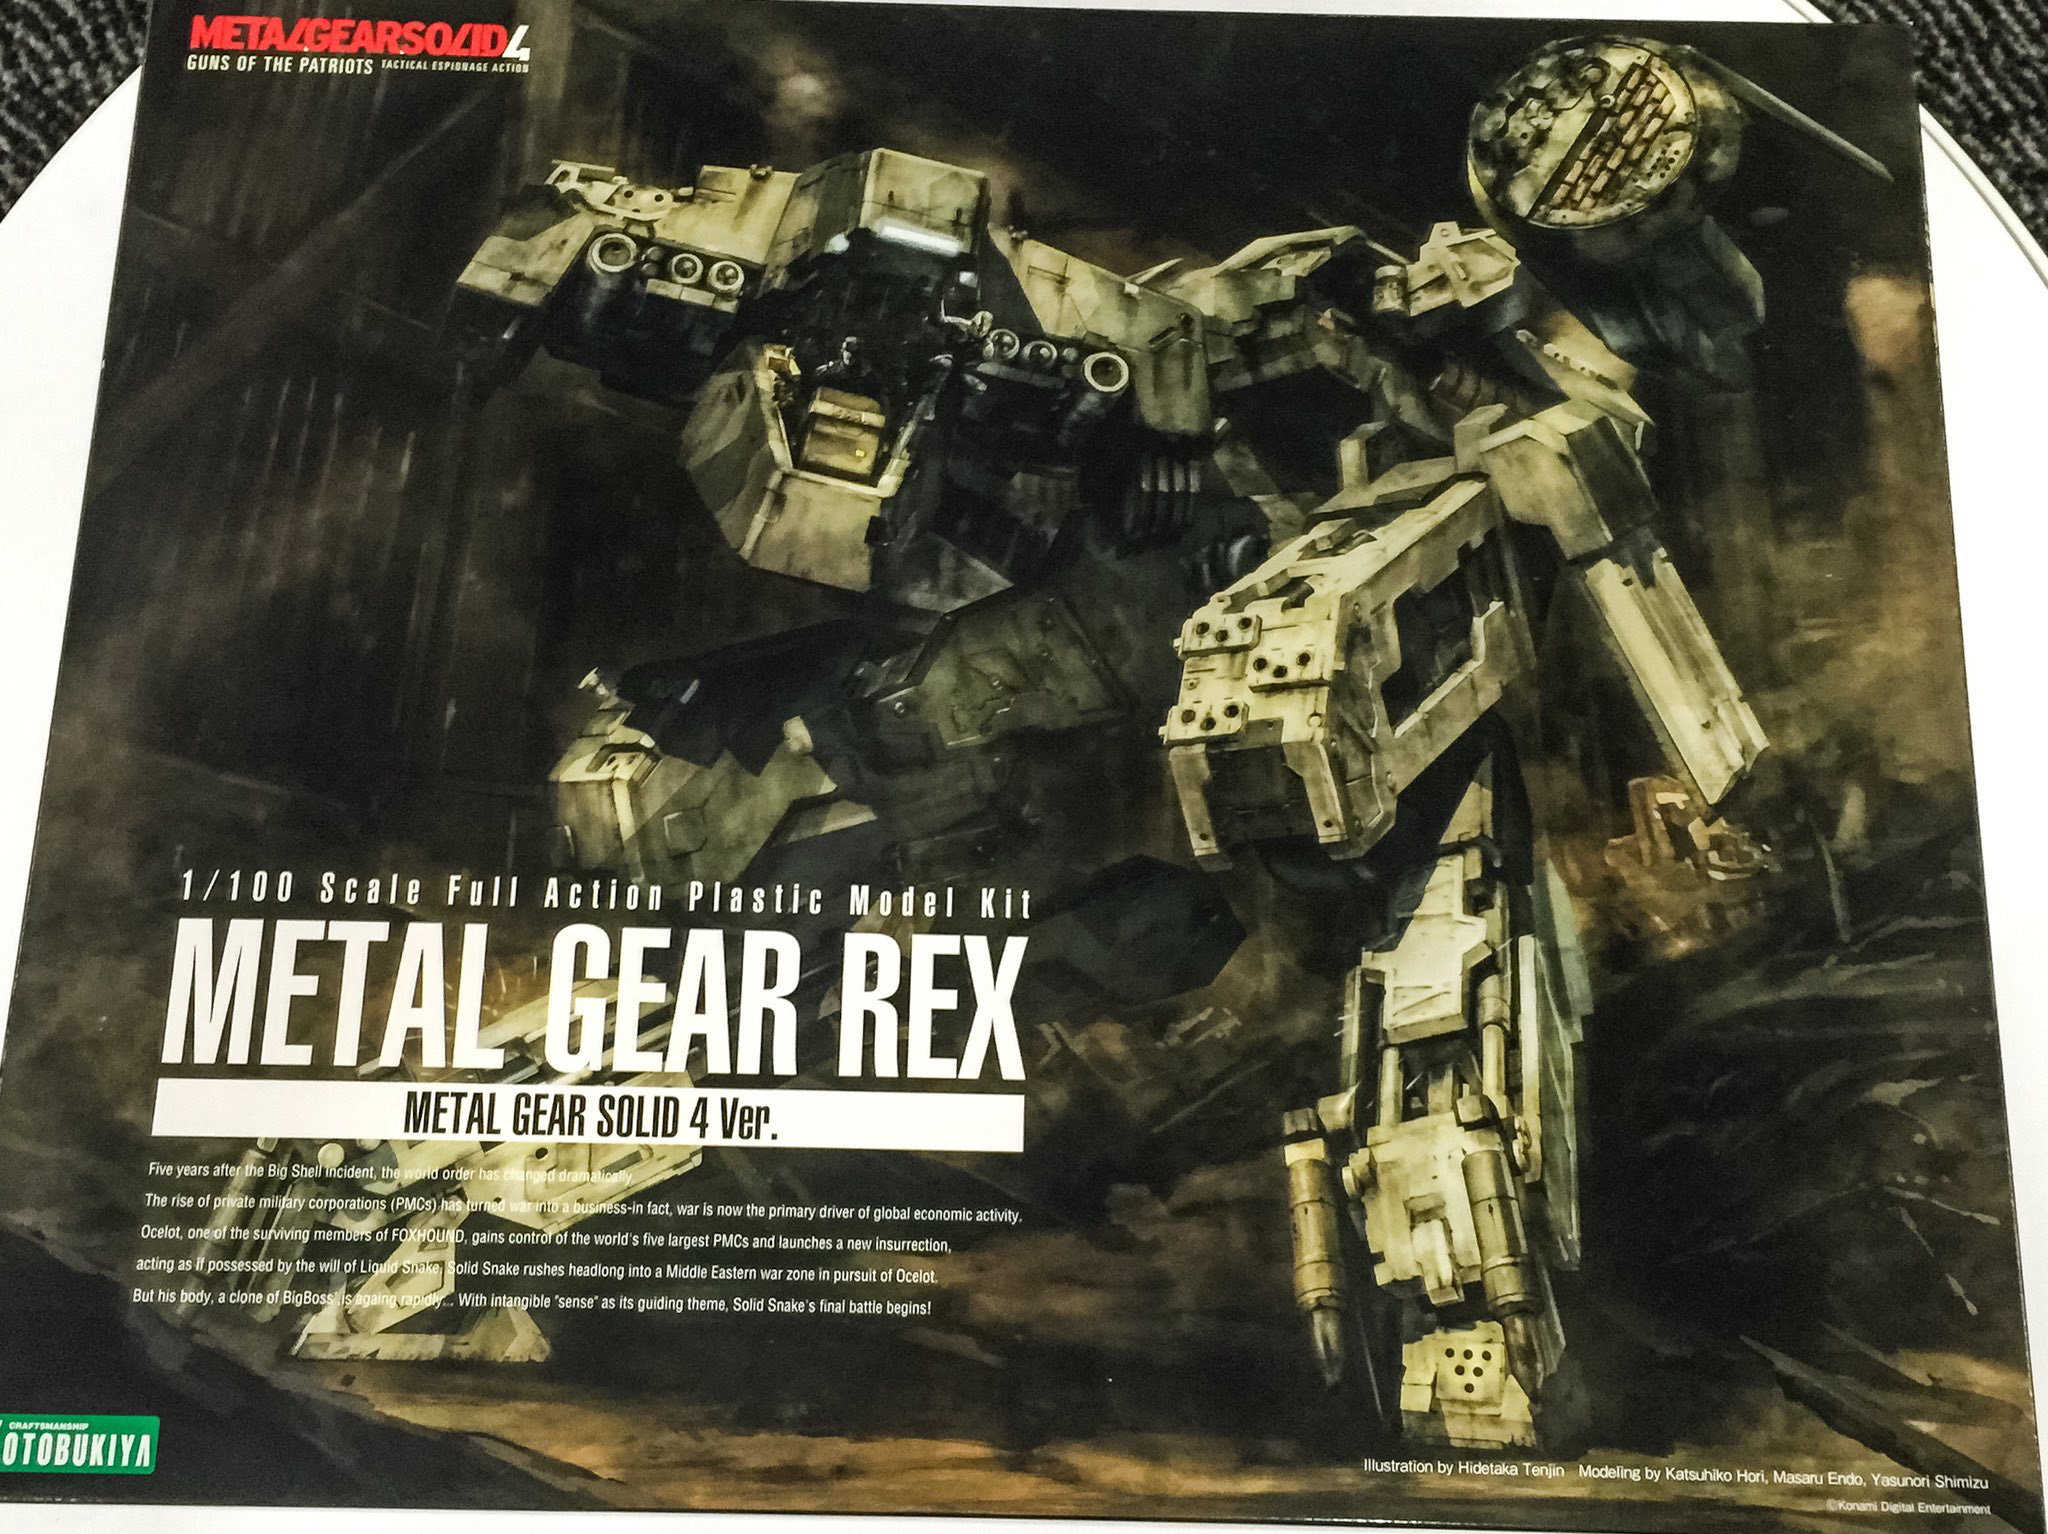 kotobukiya-rex-metal-gear-solid-4-version-box-kojima